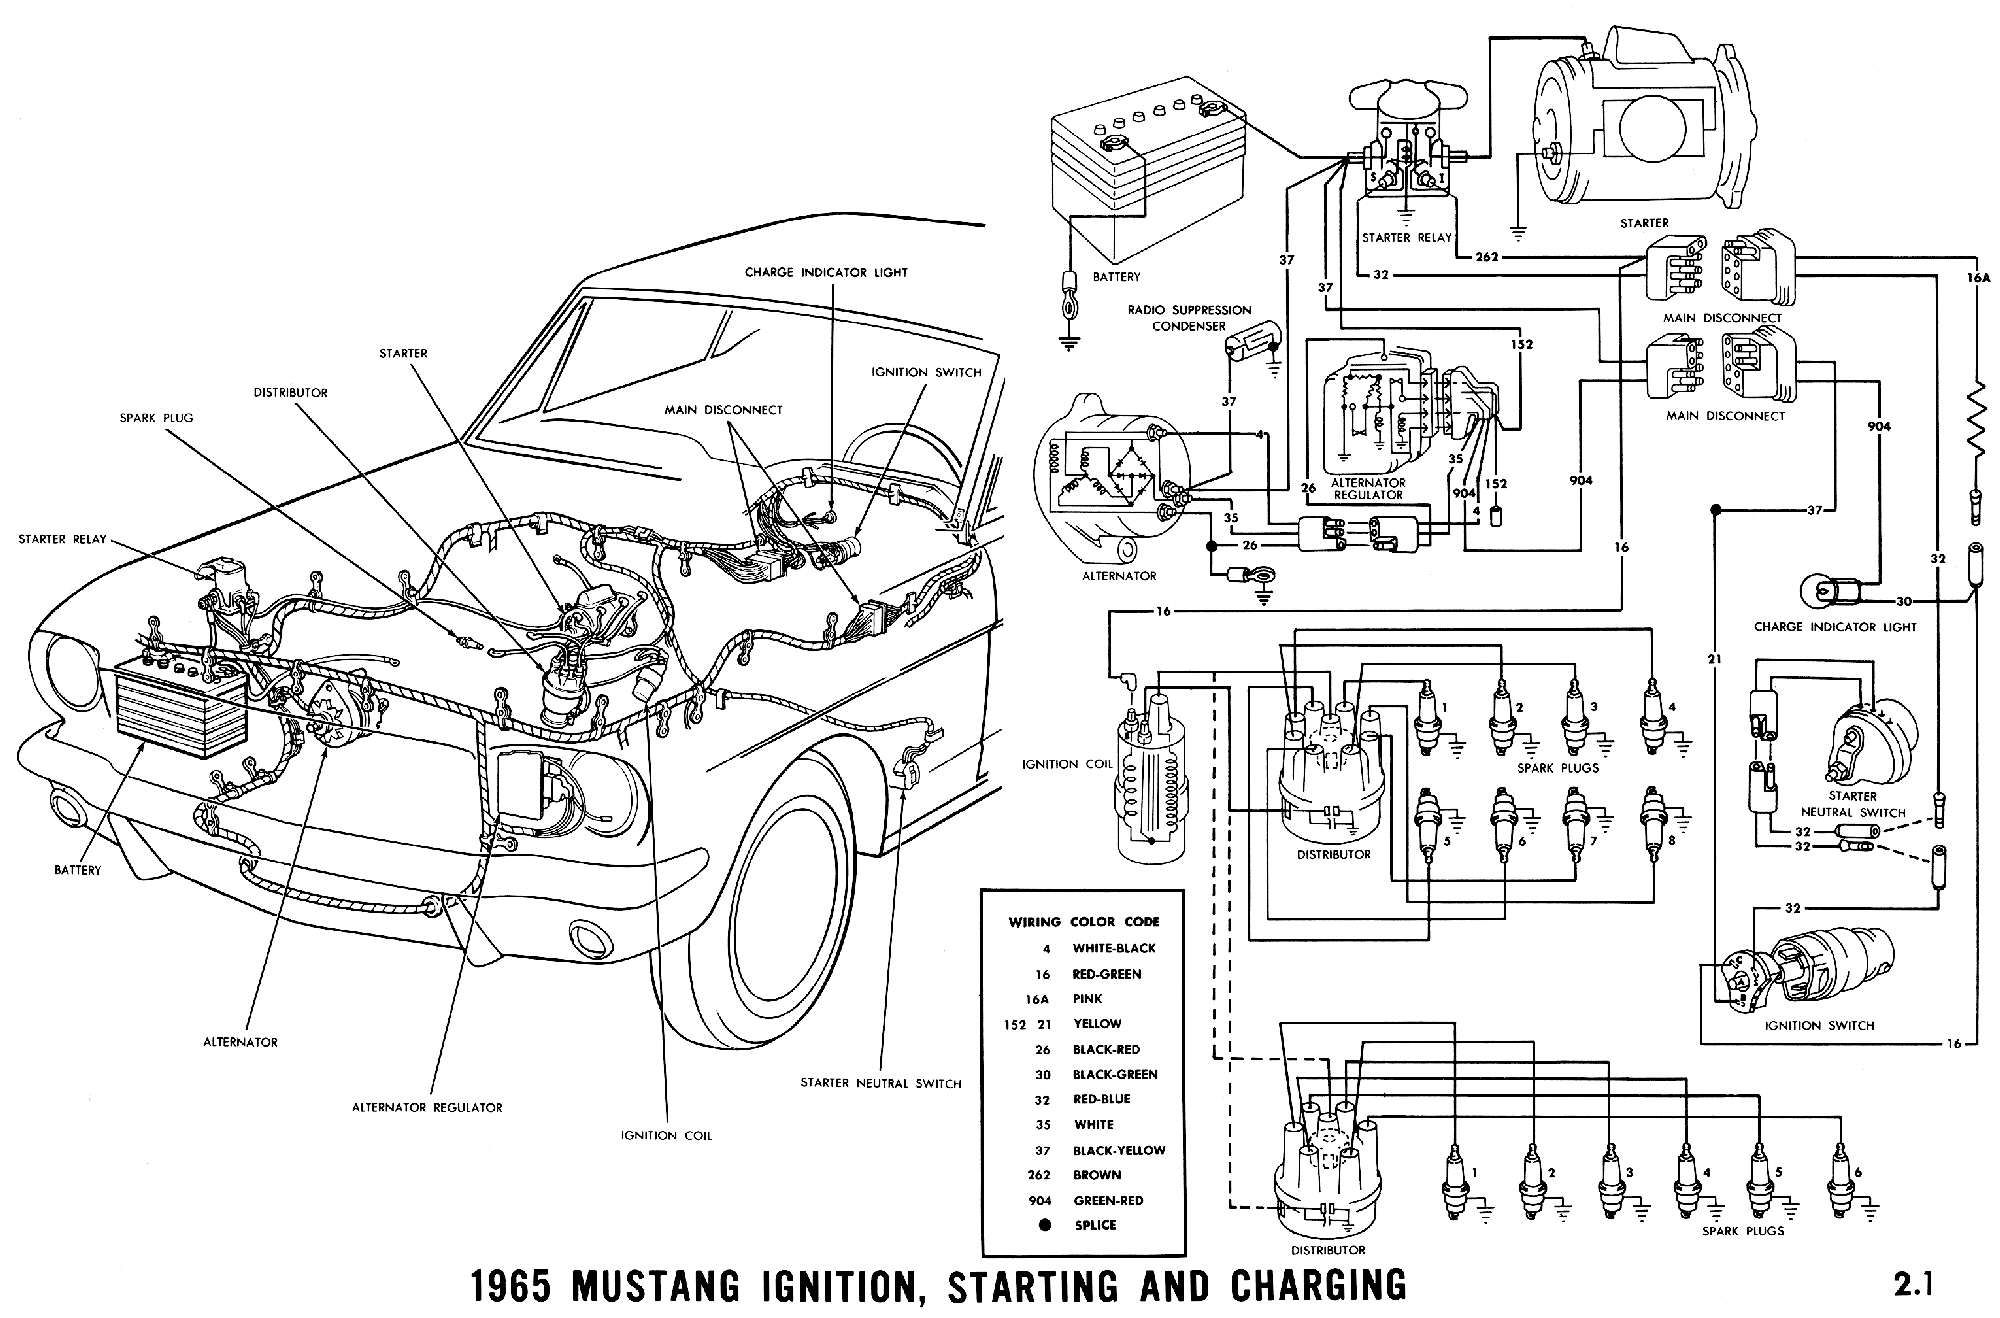 hight resolution of 1965 mustang wiring diagrams mustang 1965 mustang mustang wiring diagram 1970 mustang coup